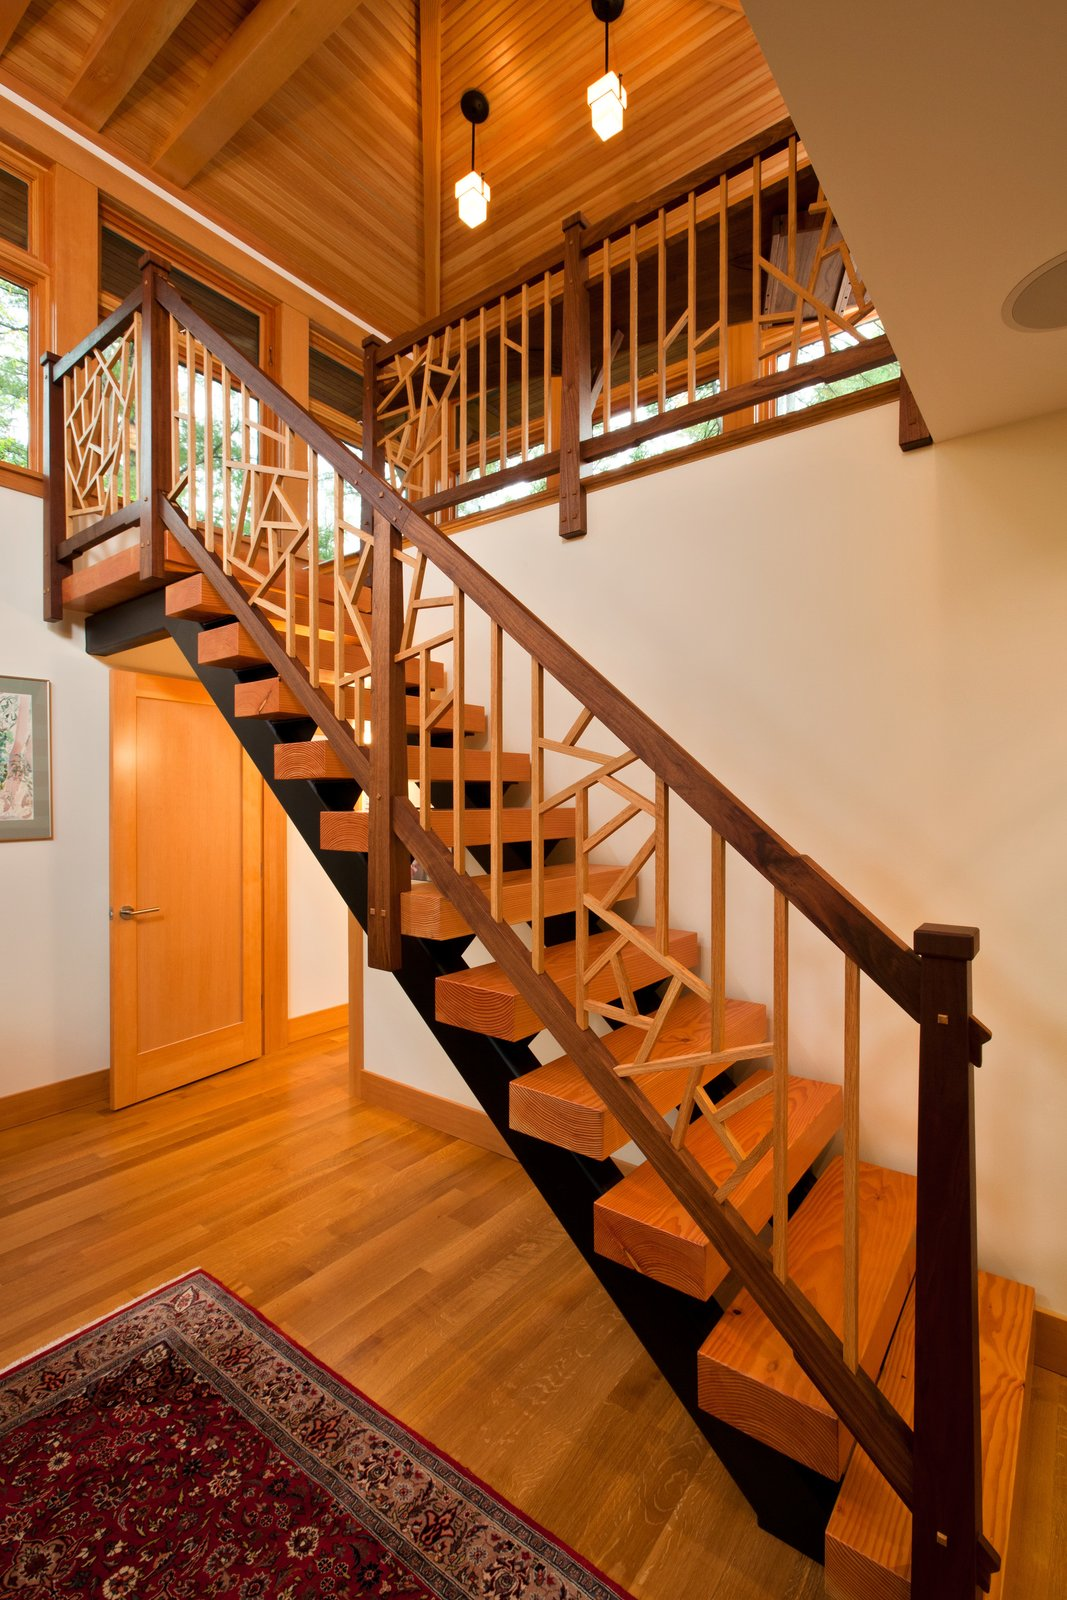 Staircase to second floor of home office, designed by local Adirondack artist